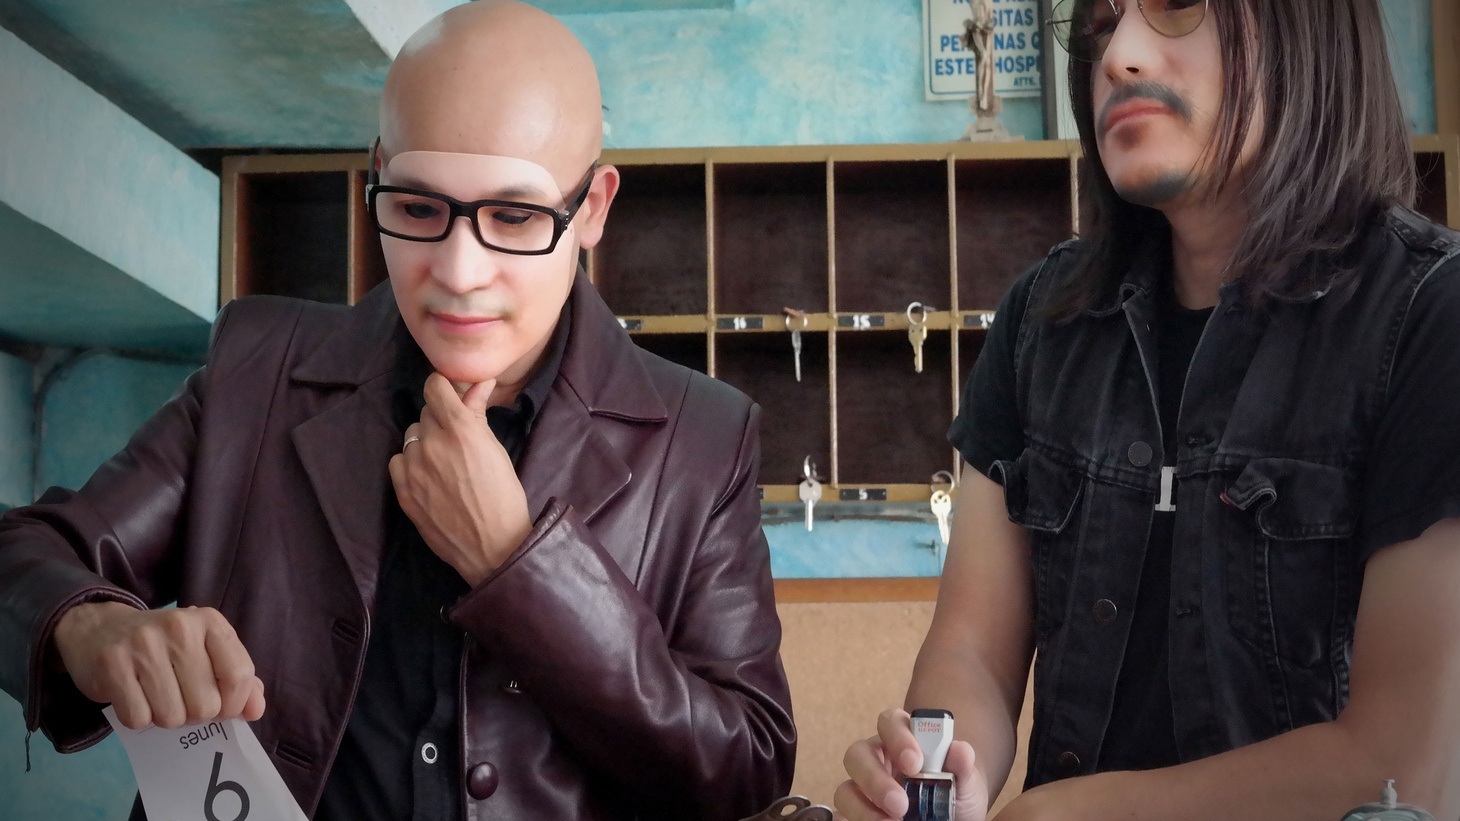 Tijuana's electronic music pioneers Bostich + Fussible were just announced on the lineup for this year's Coachella festival.